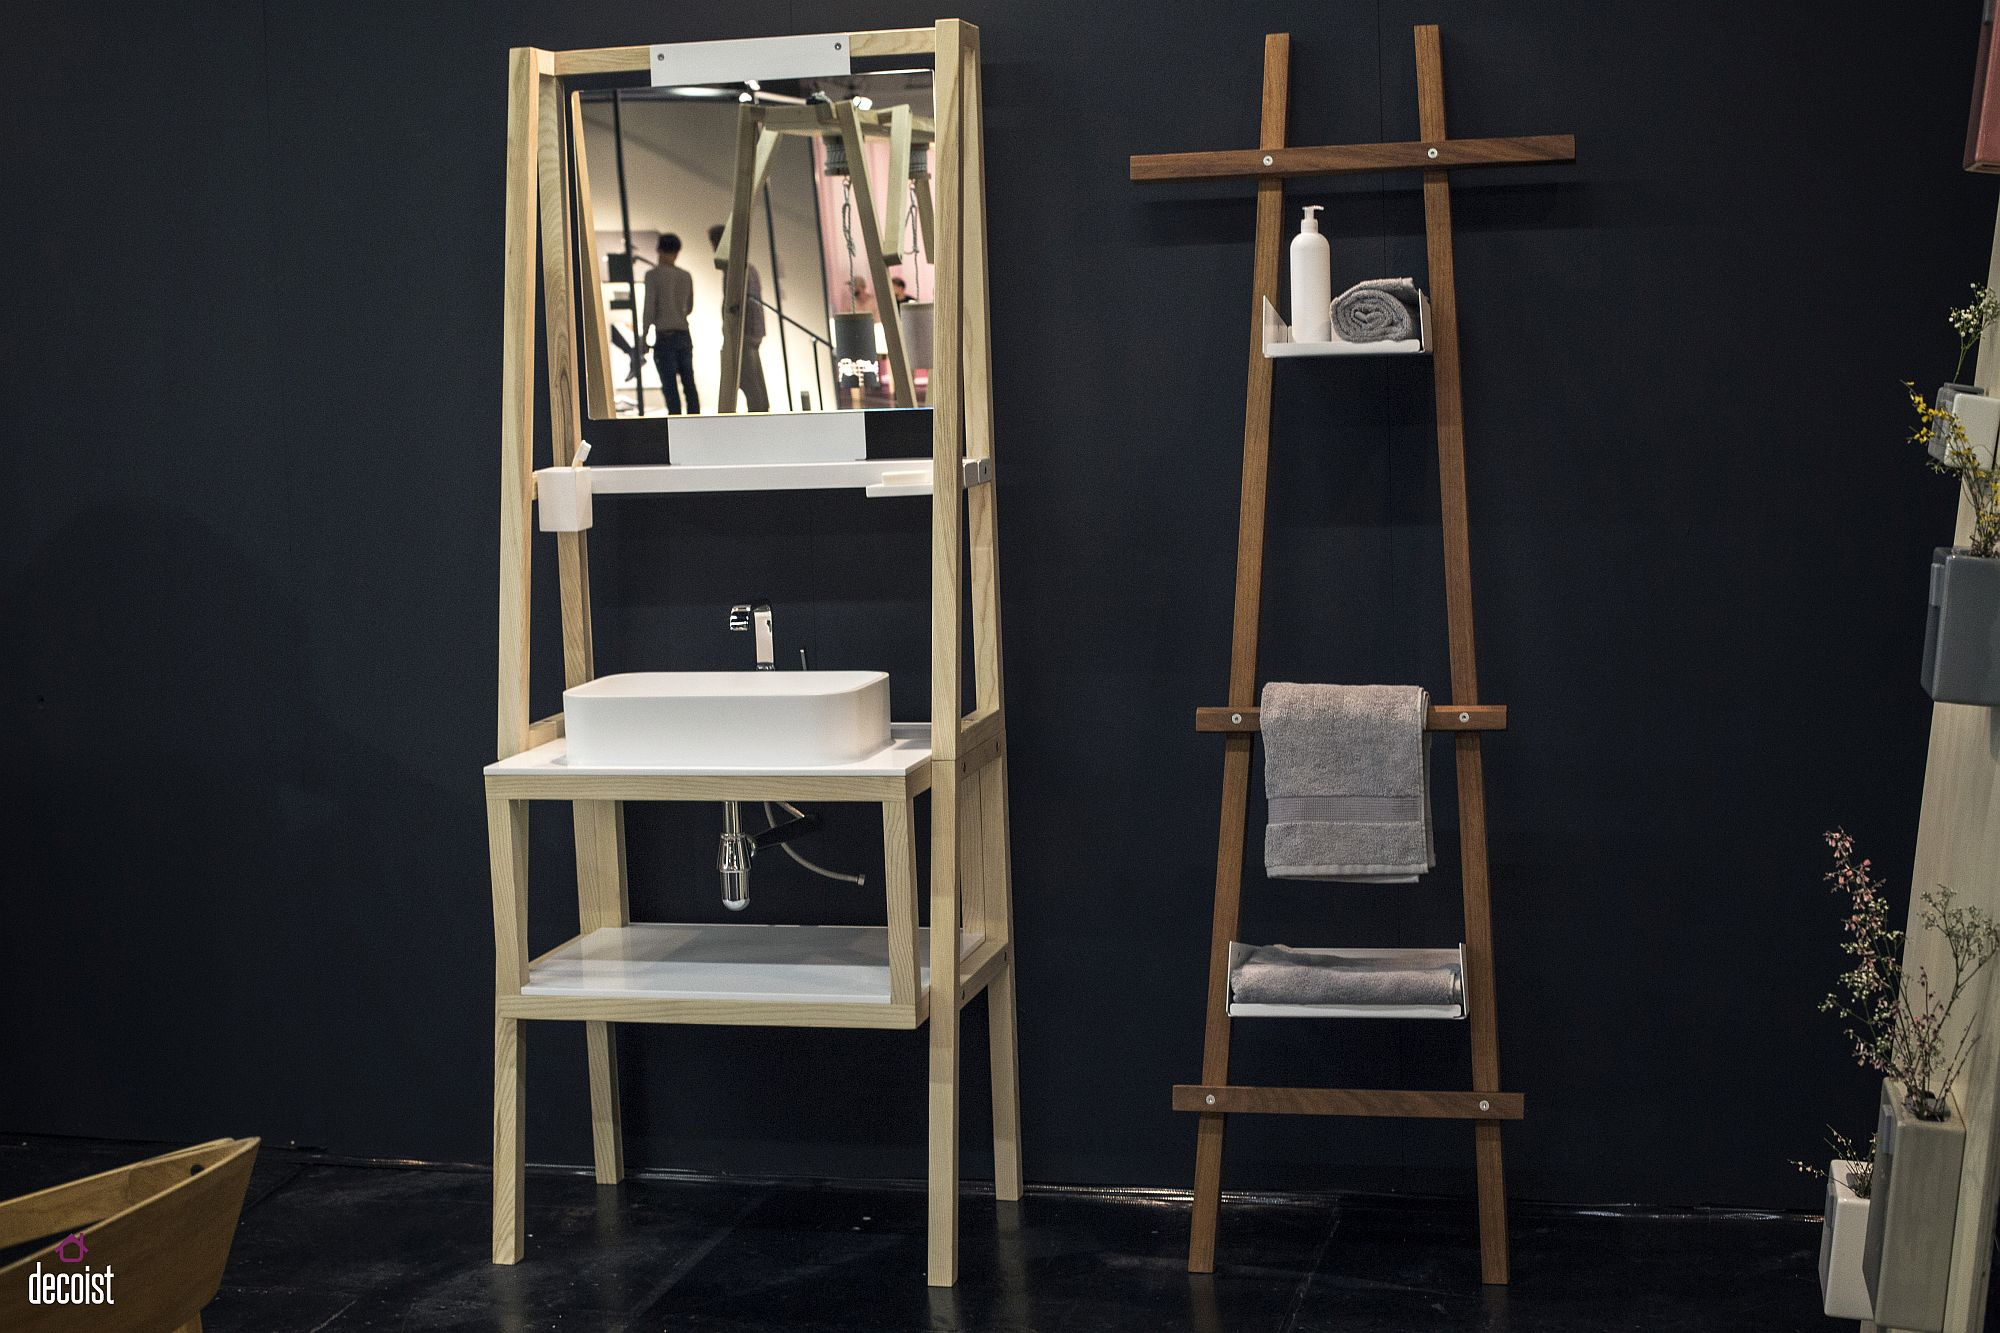 Innovative and space savvy ladder shelf and sink for the small bathroom Folded and Stacked: 20 Towel Display Ideas for Contemporary Bathrooms